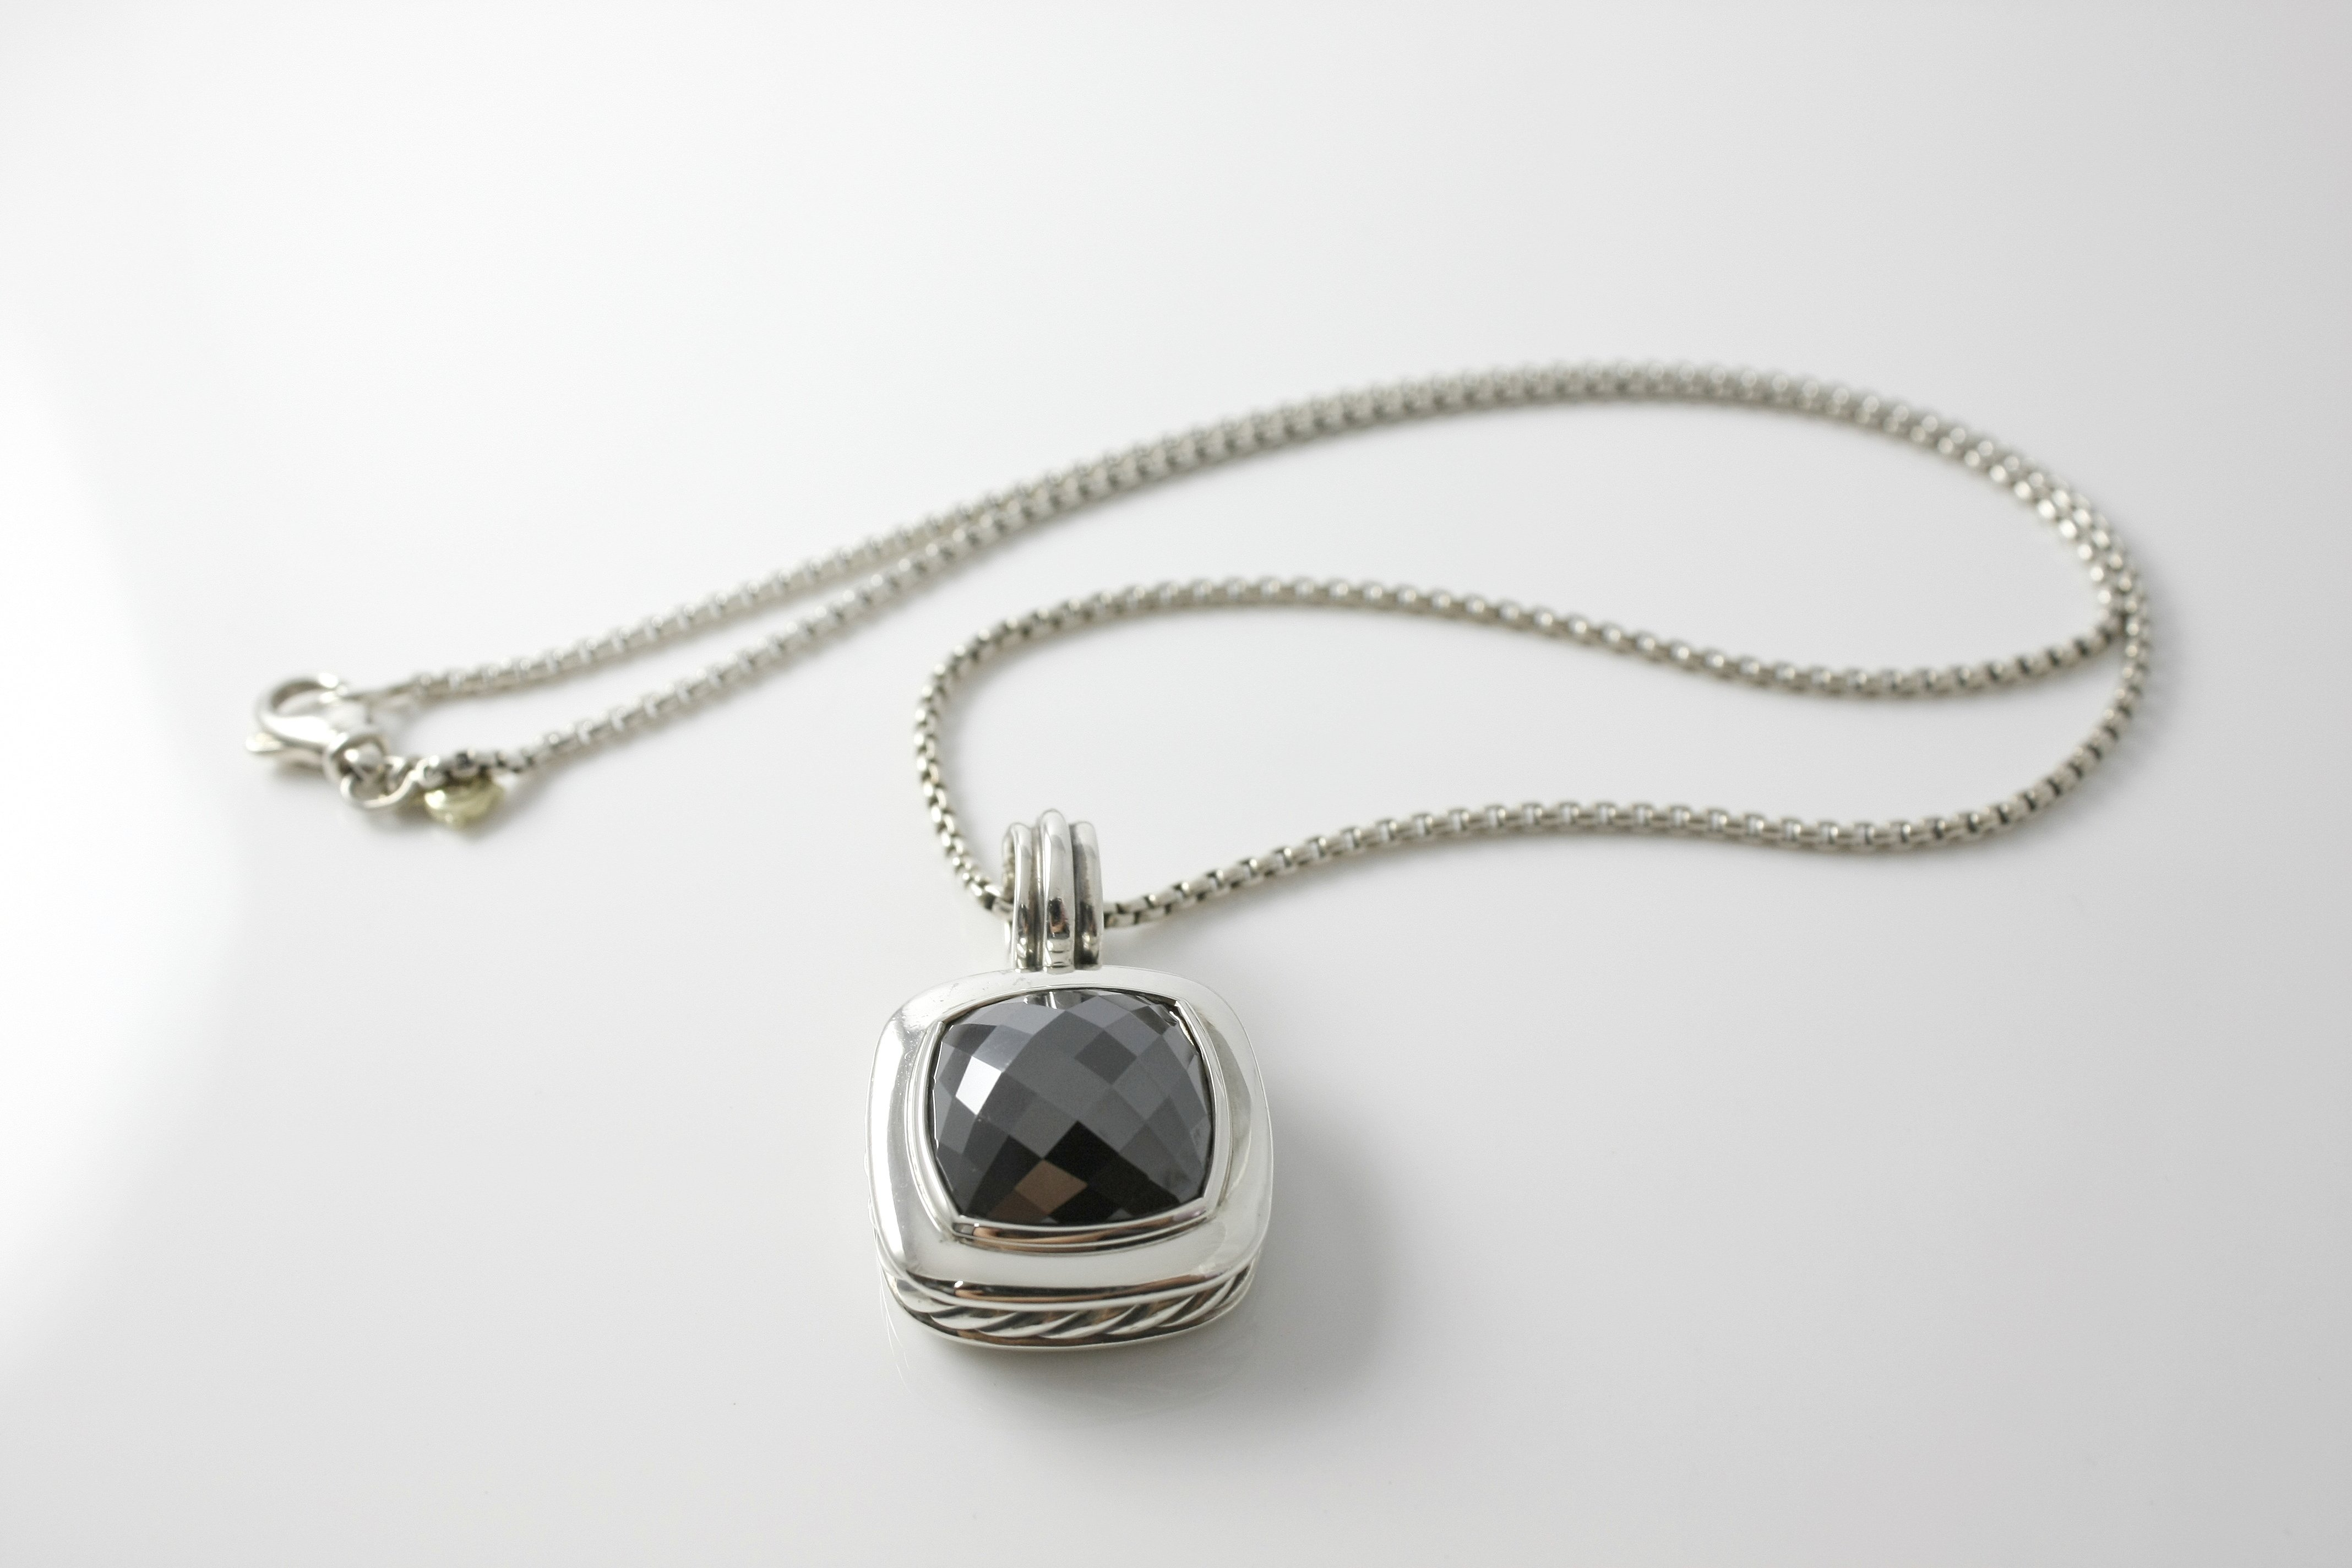 David Yurman Albion Necklace - $550